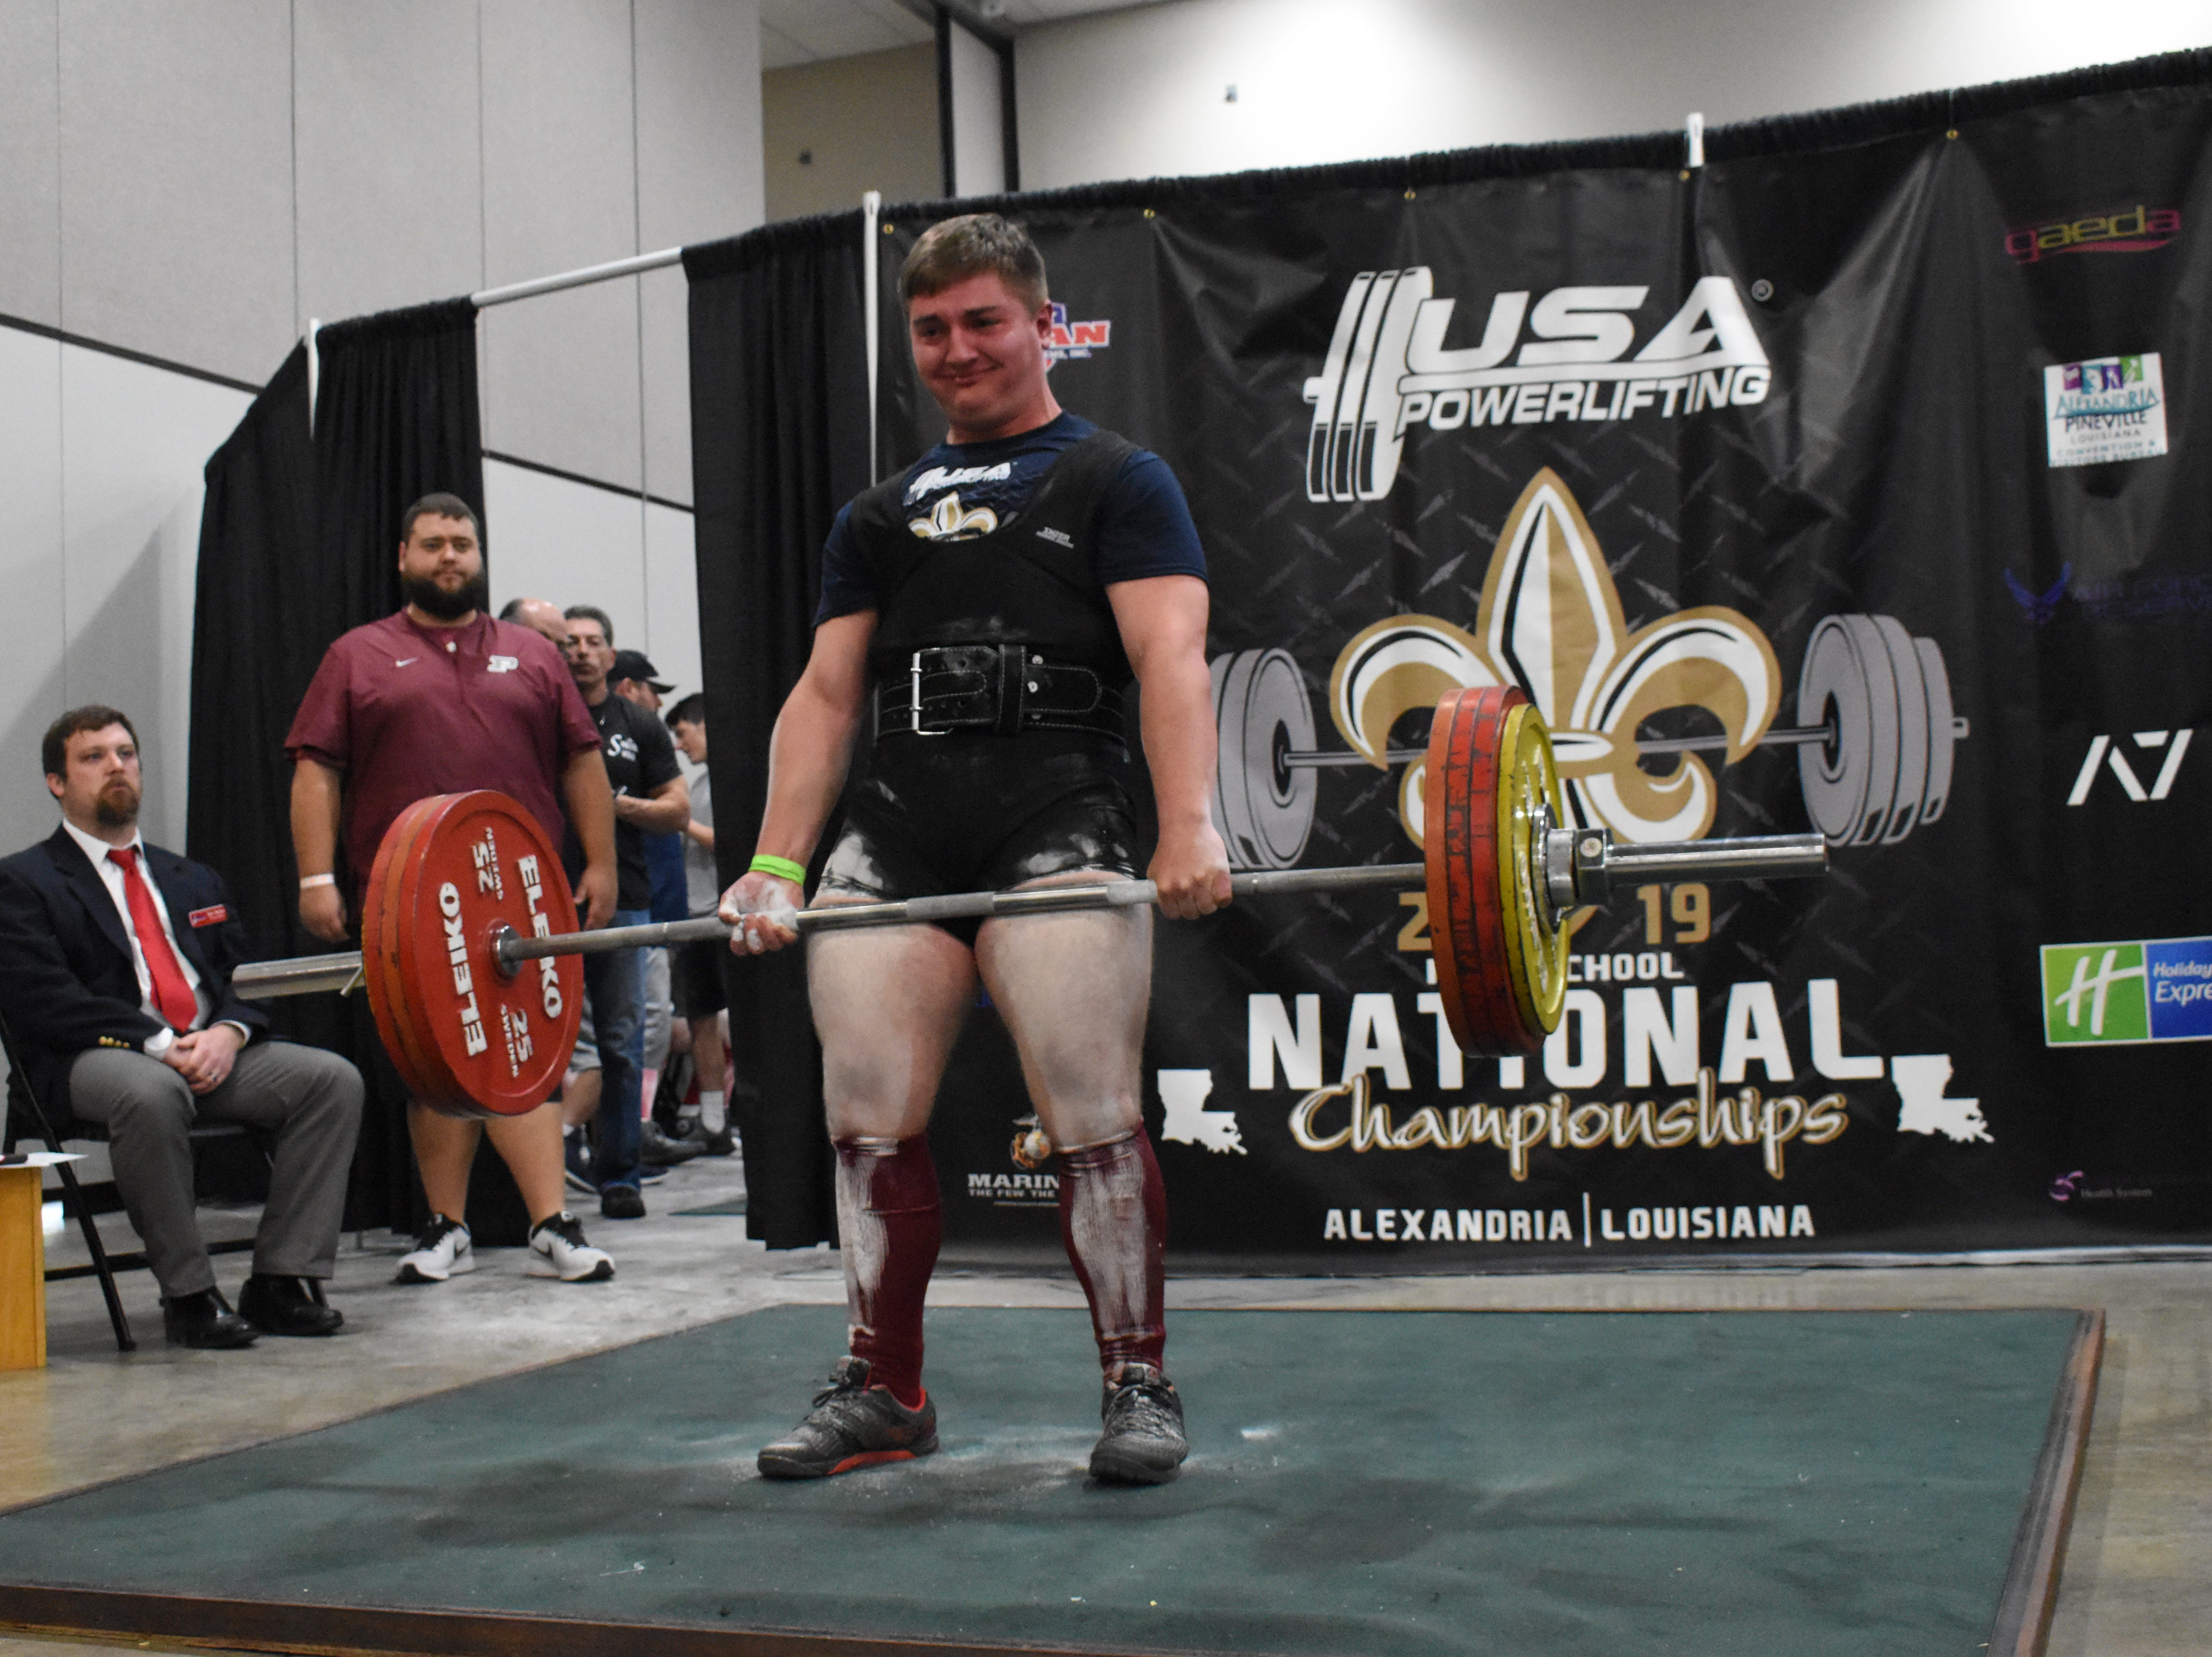 Tyreana Hughes of Pineville High School performs a deadlift in the The USA Powerlifting High School National Championships, equipped and raw, are being held at the Randolph Riverfront Center in downtown Alexandria with high school powerlifters from across the country competing in the four-day event. Powerlifters from local schools are also competing.